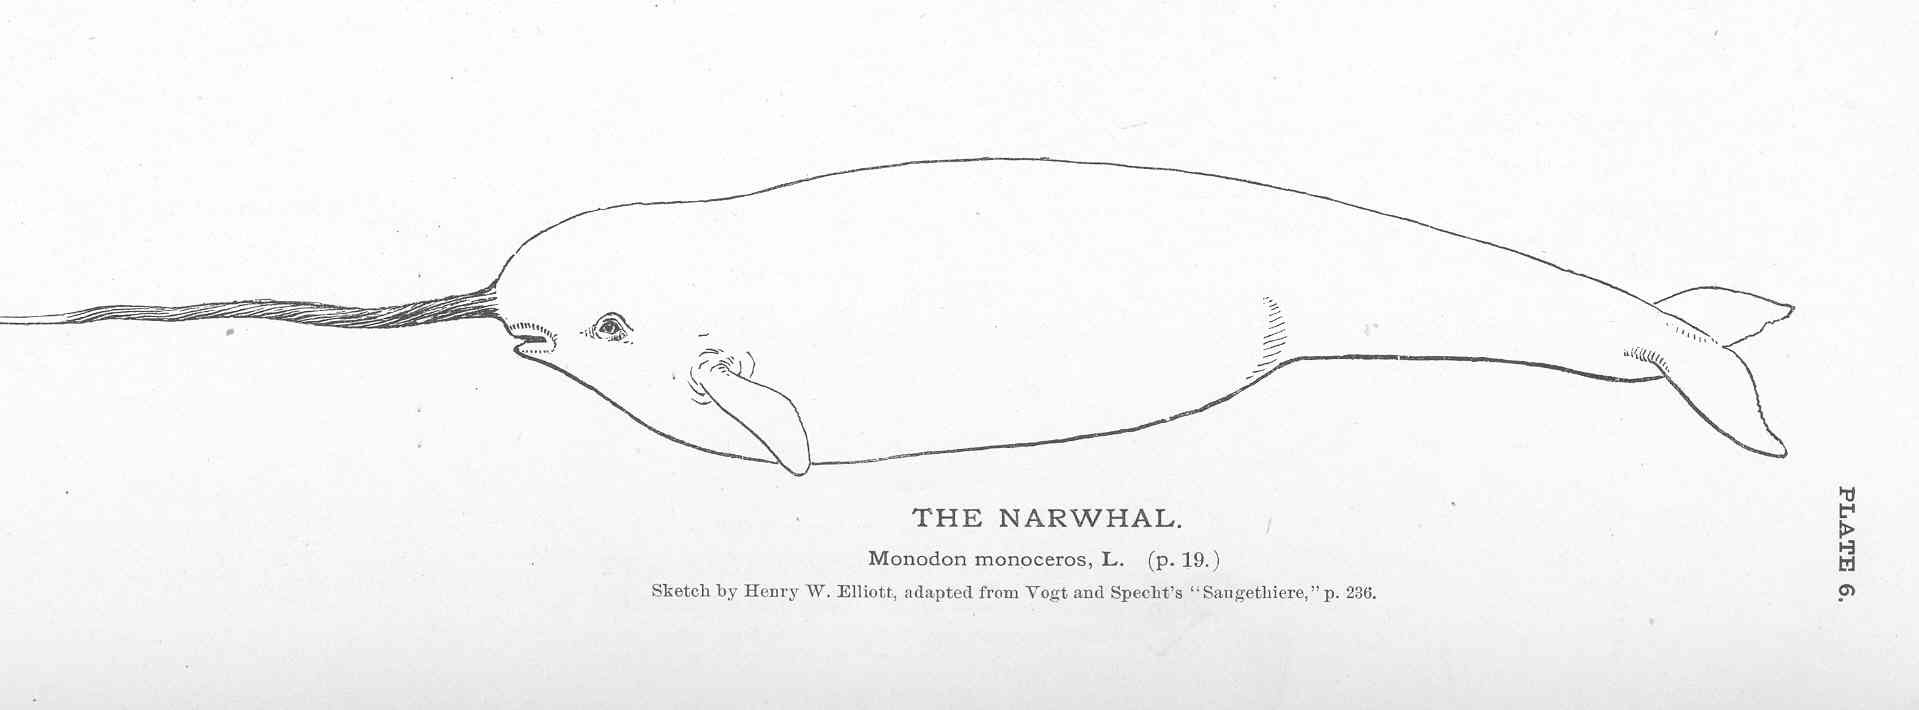 File:FMIB 50841 Narwhal.jpeg - Wikimedia Commons